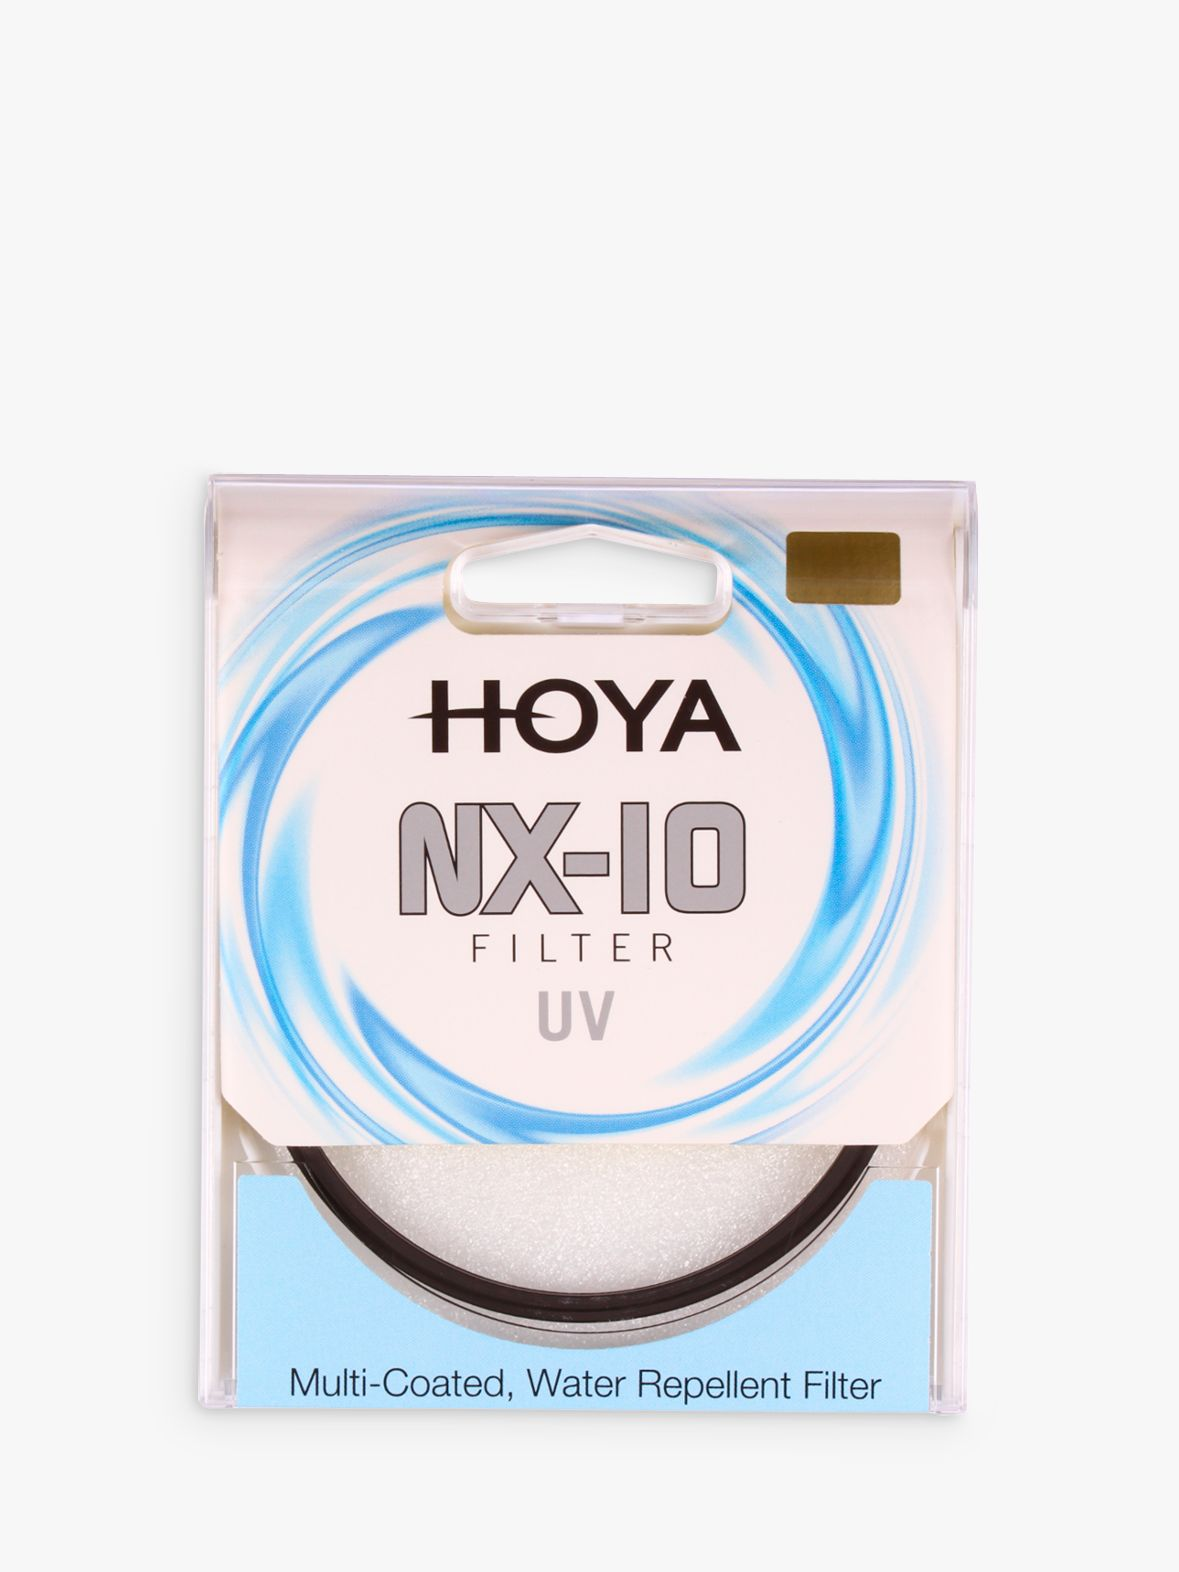 Hoya Hoya NX-10 UV Lens Filter, 49mm